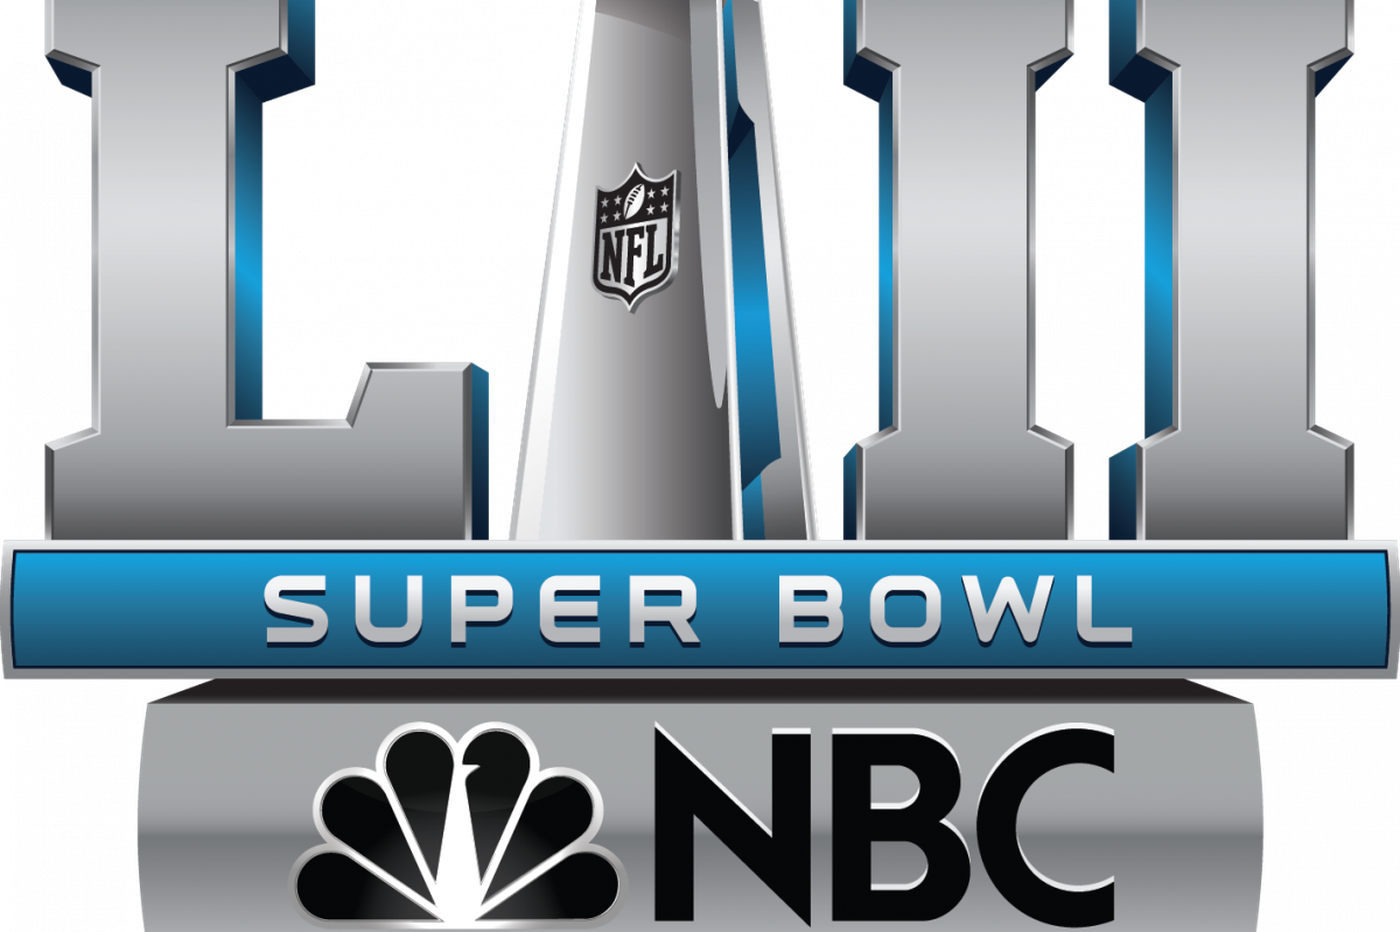 NBC expects $1.3B in Super Bowl LII, Winter Olympics ads in February